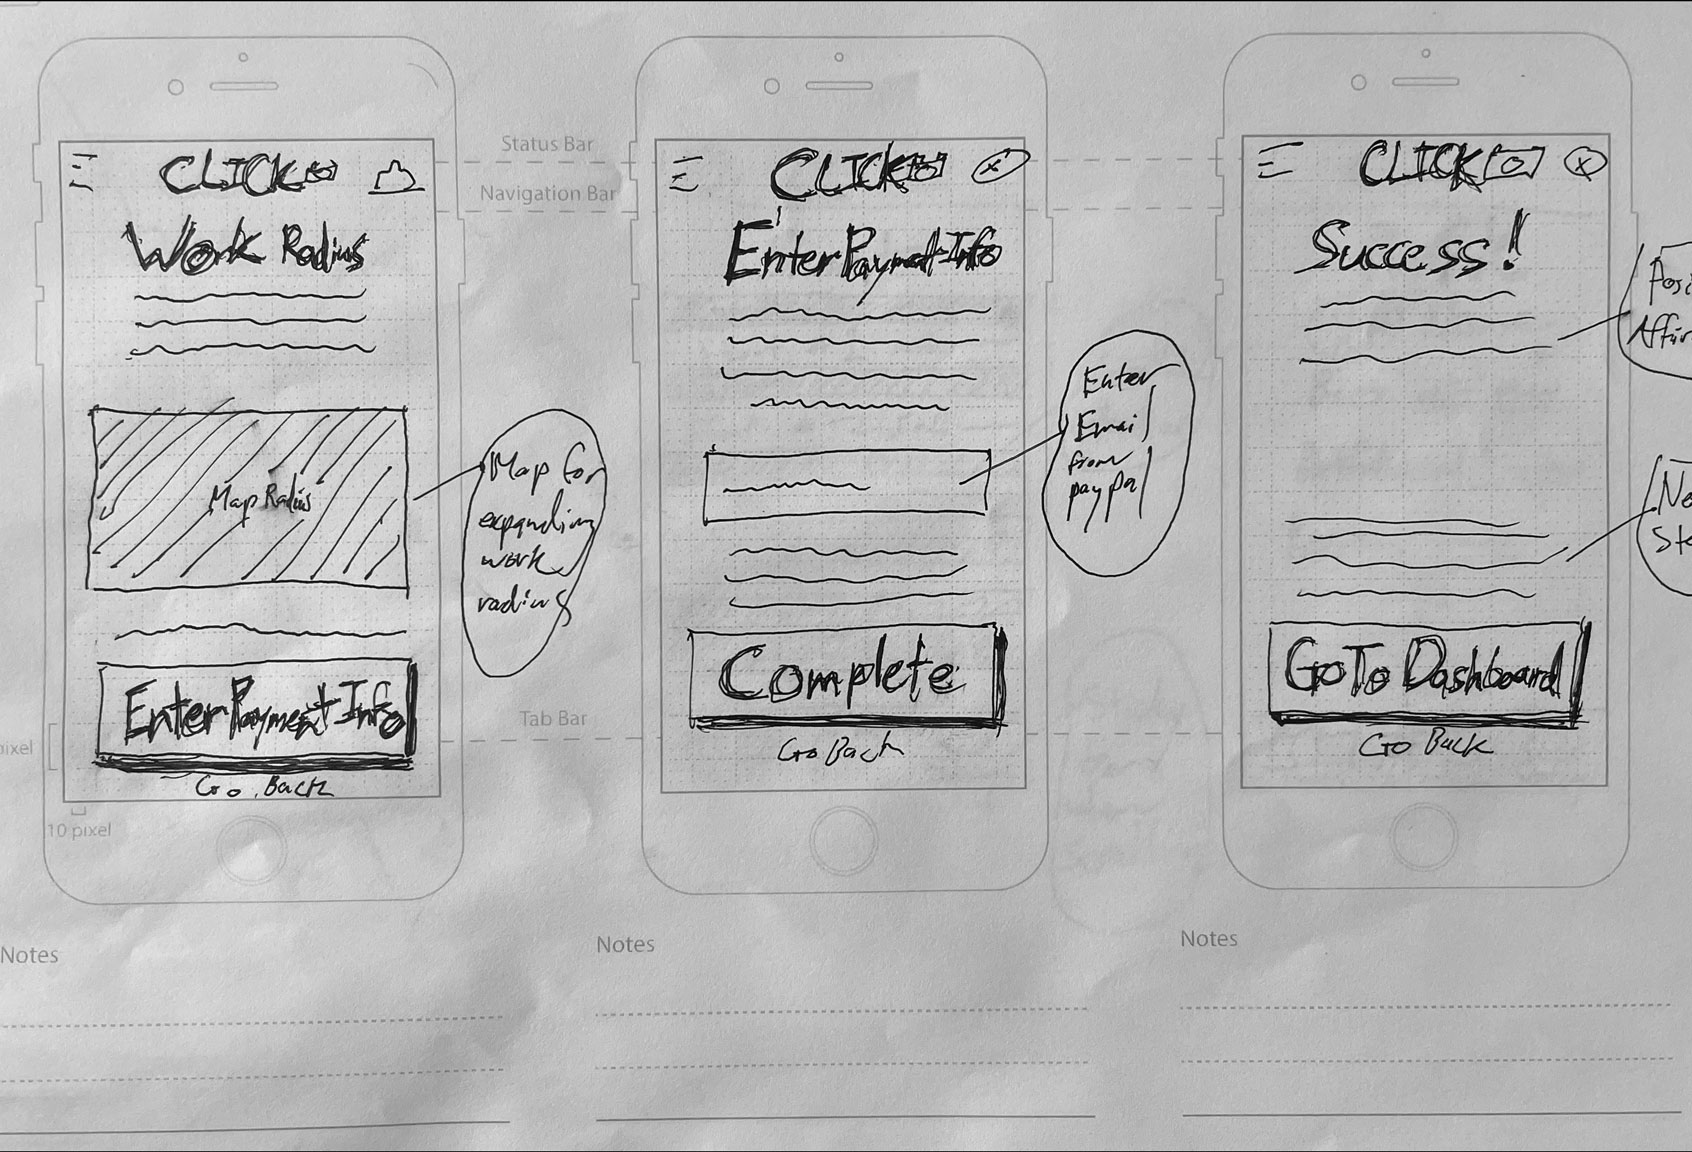 sketches of the photographer signup screens